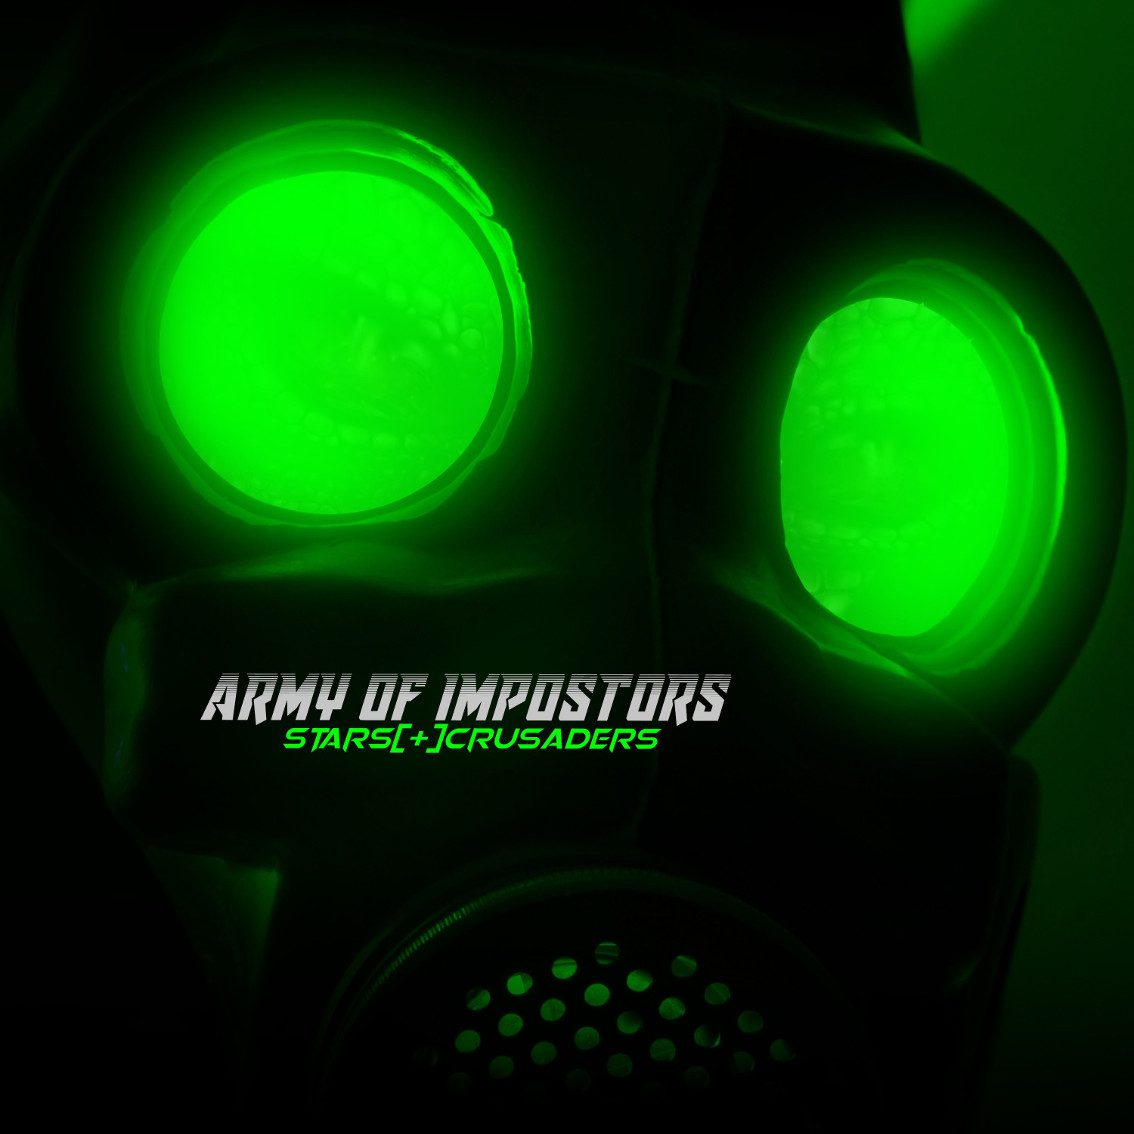 Brand new single by Stars Crusaders: 'Army Of Impostors', mixed and mastered by Absurd Minds studio wizzard